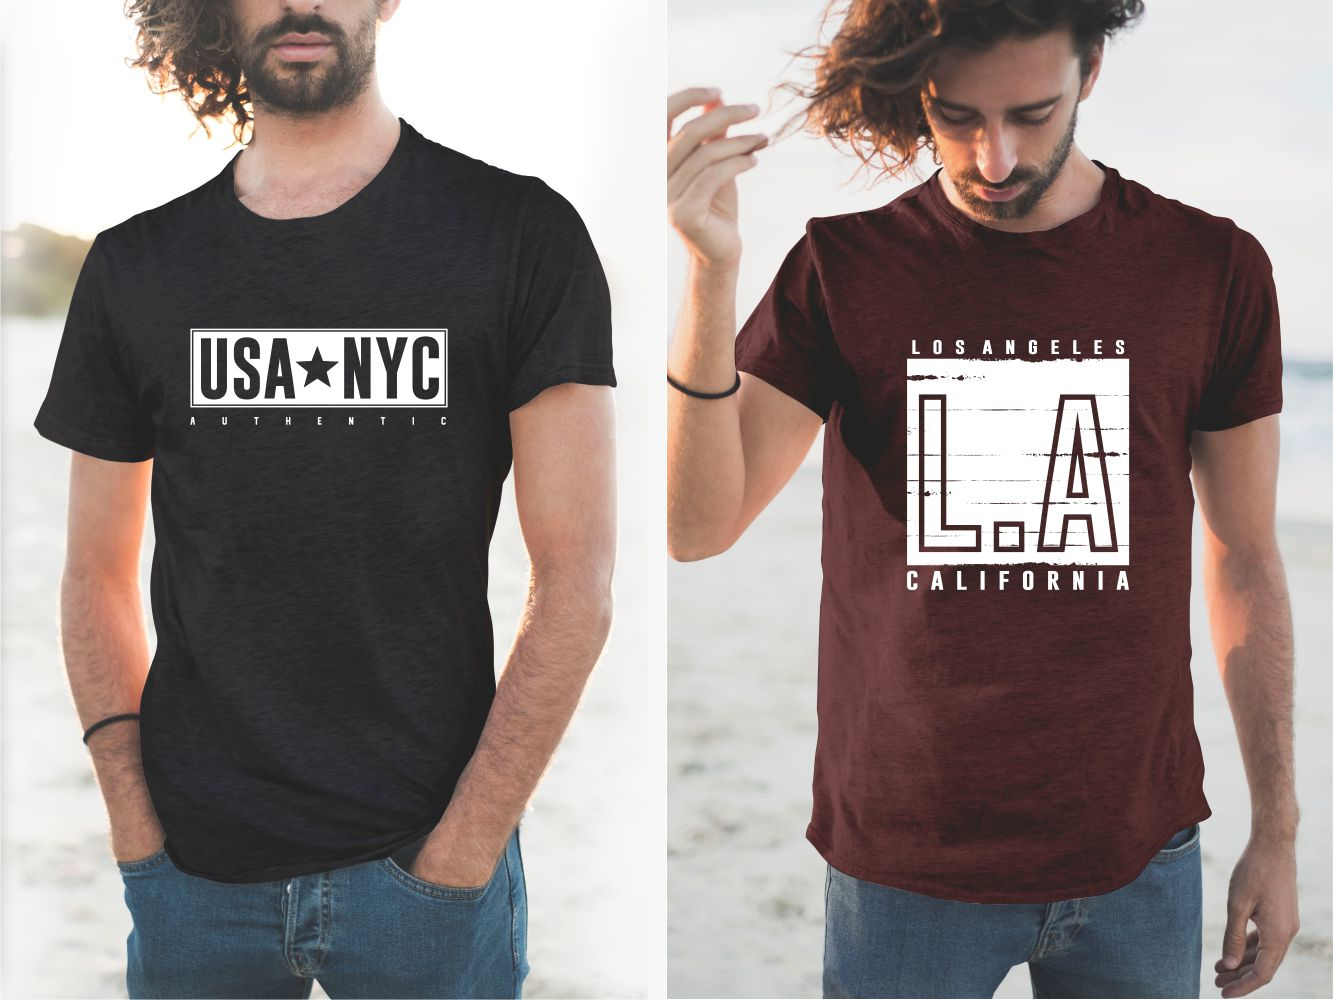 Black and burgundy T-shirts with New York and LA slogans.